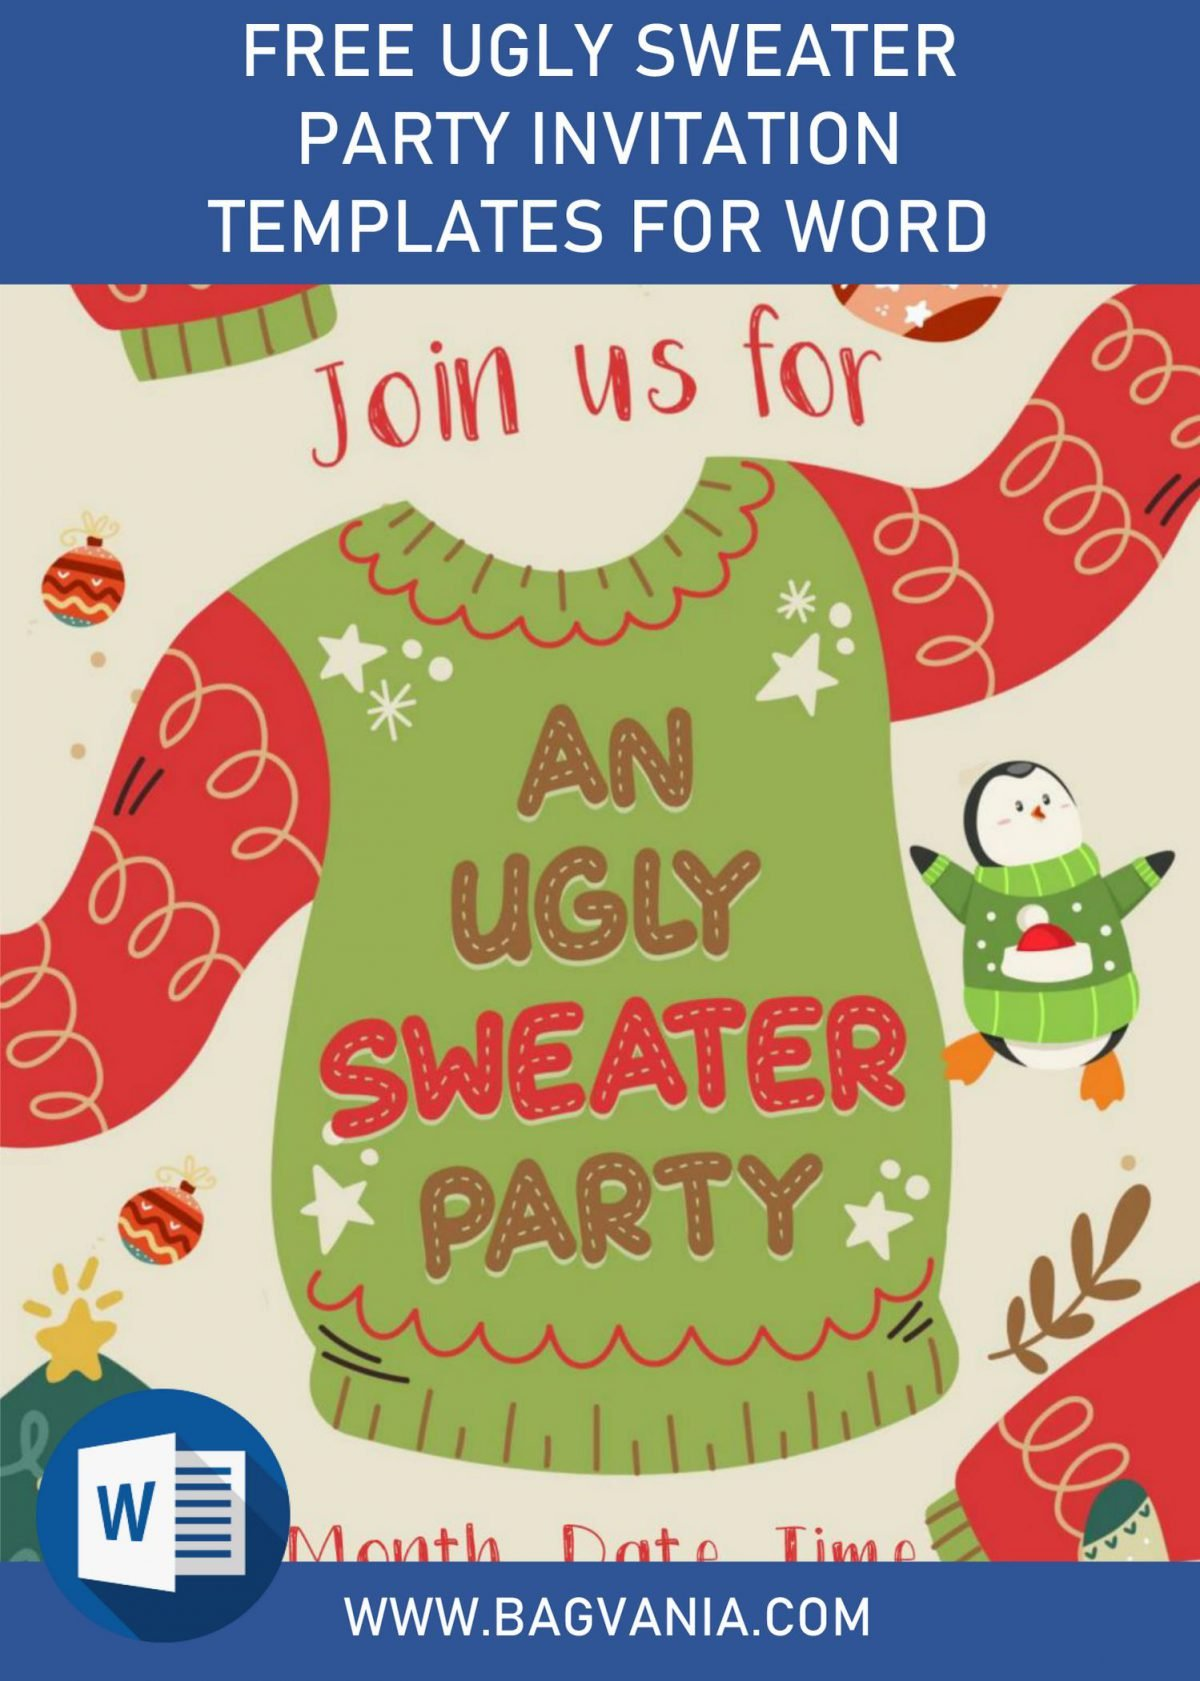 Free Winter Ugly Sweater Birthday Party Invitation Templates For Word